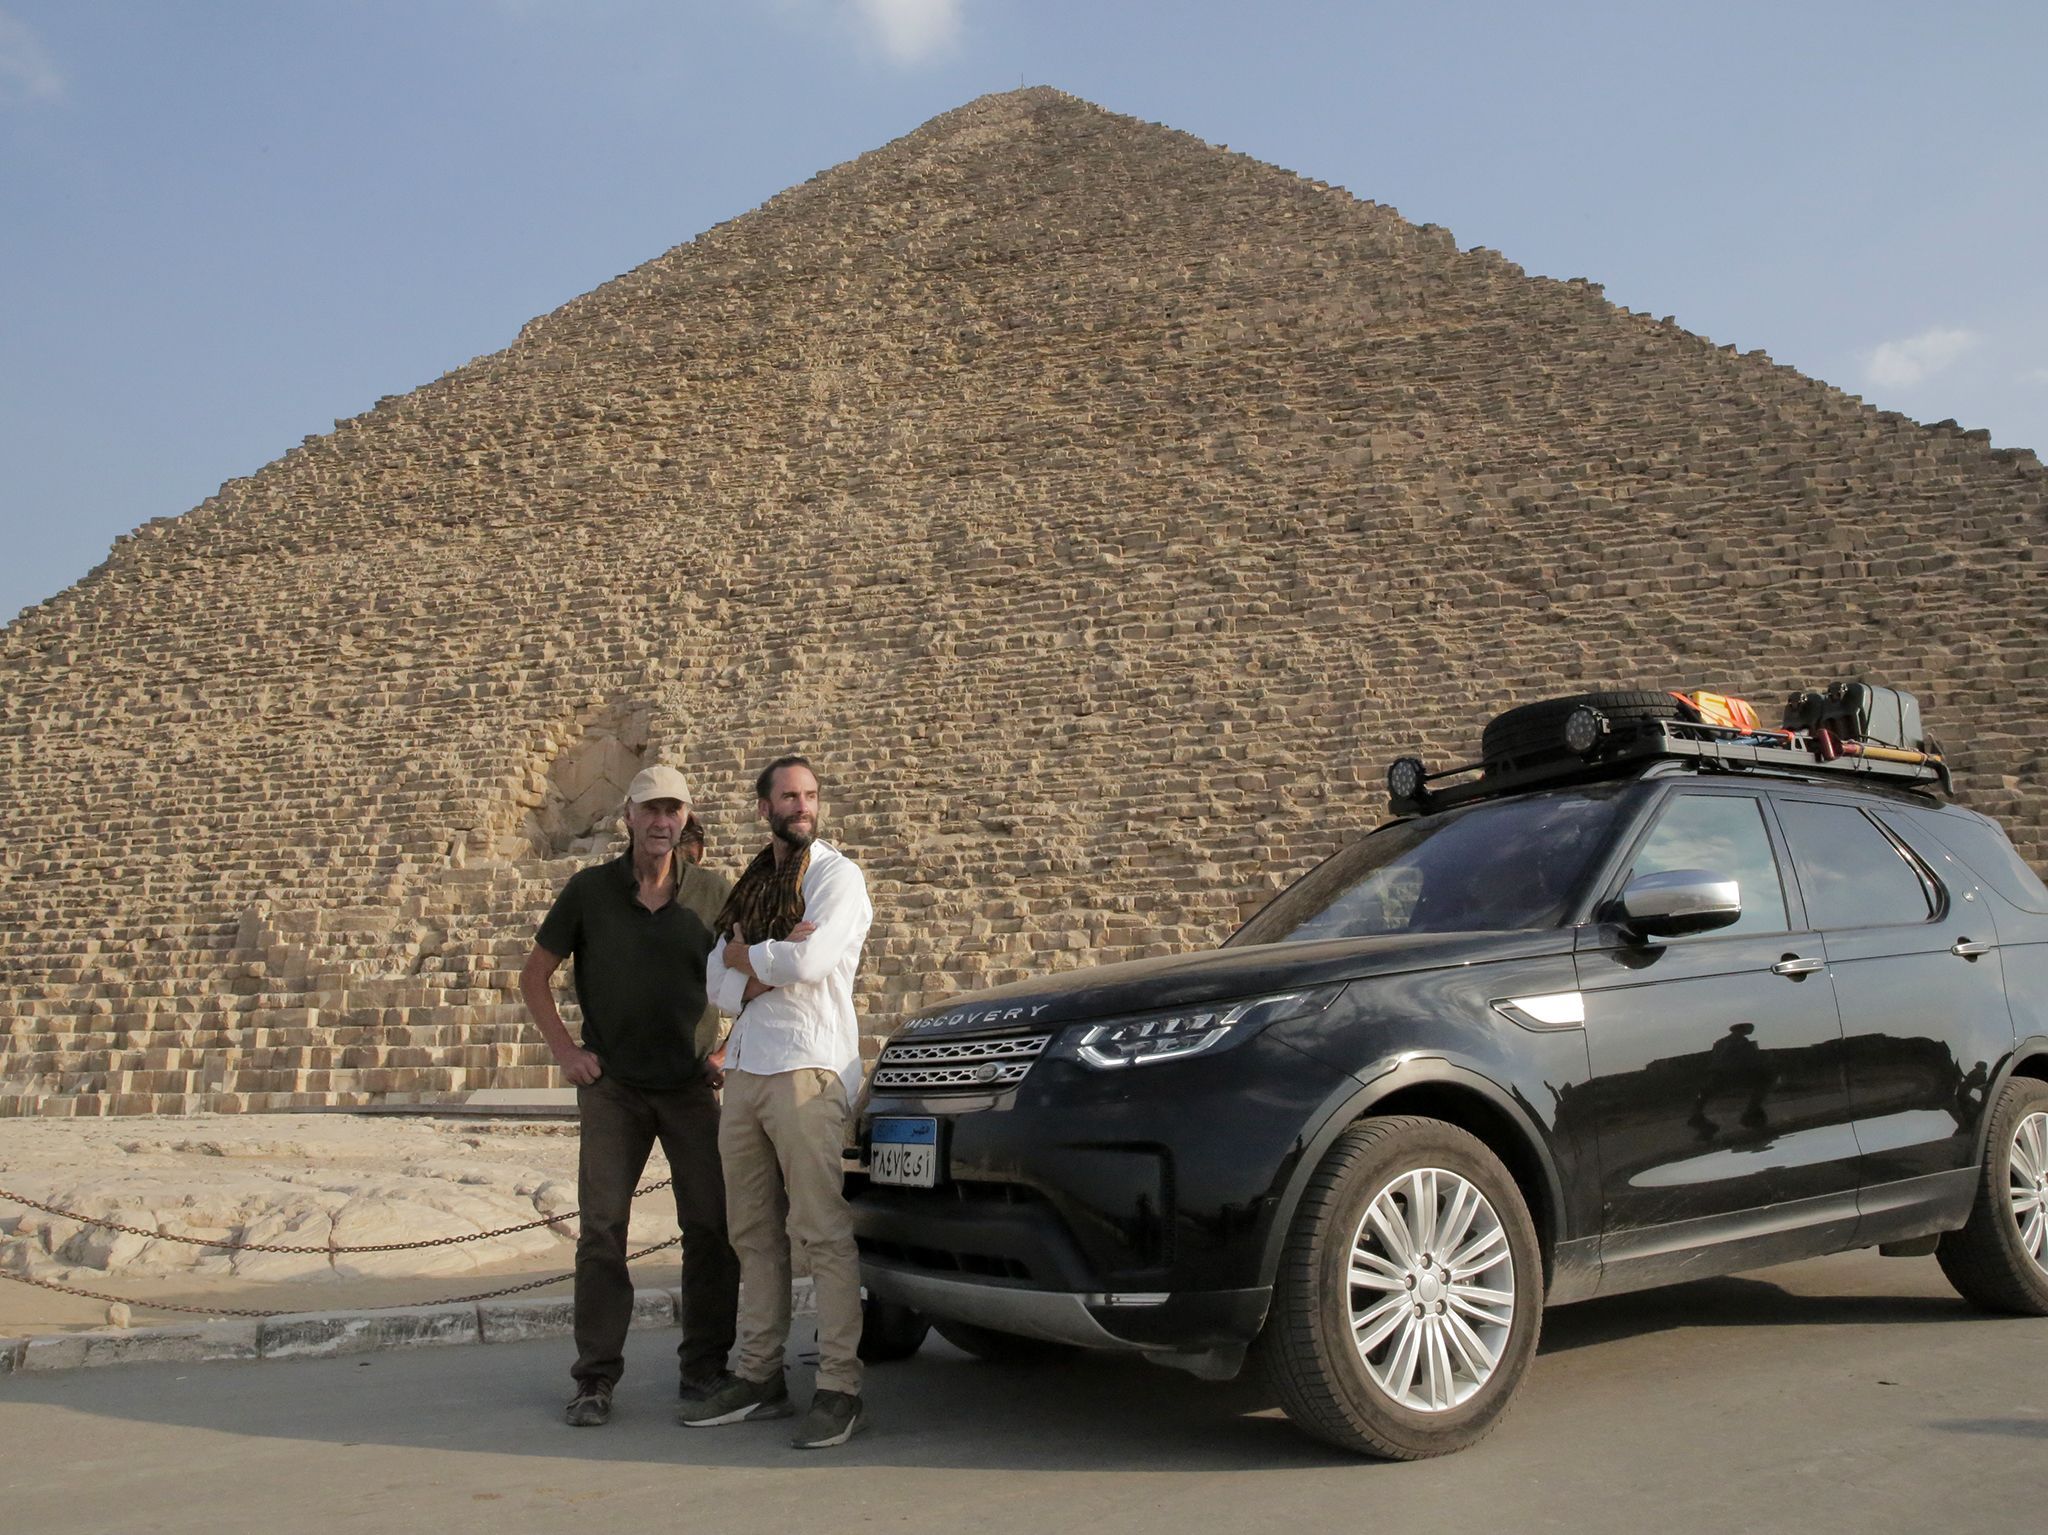 Joe and Ran Fiennes with crew filming at the pyramids in Giza. This image is from Egypt with the... [Photo of the day - April 2019]